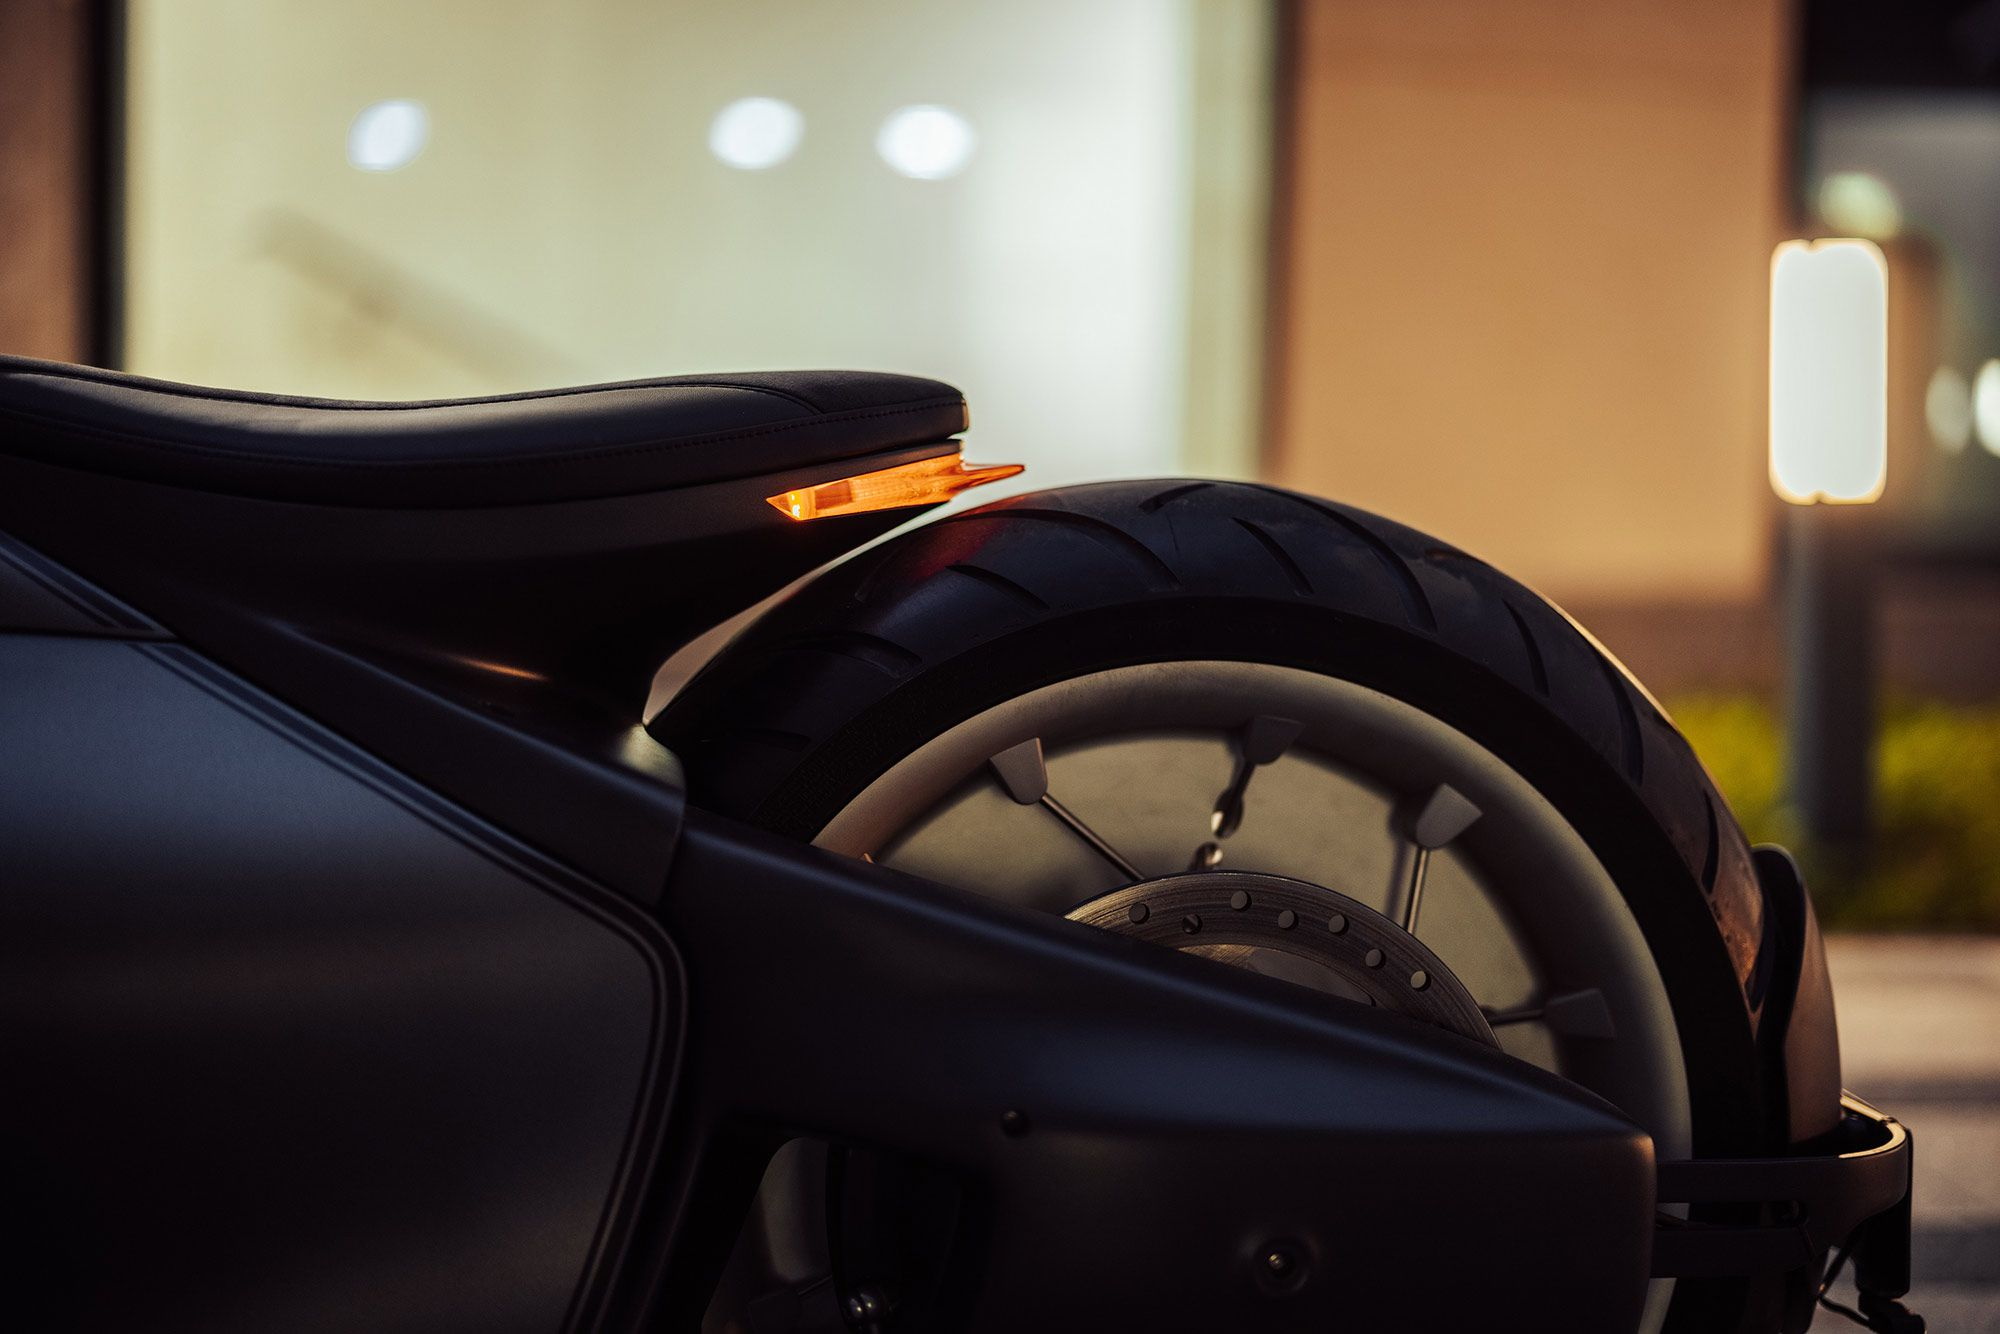 Custom seat has LED taillight integrated into the back. Air suspension or not, that is not a lot of separation between saddle and tire.